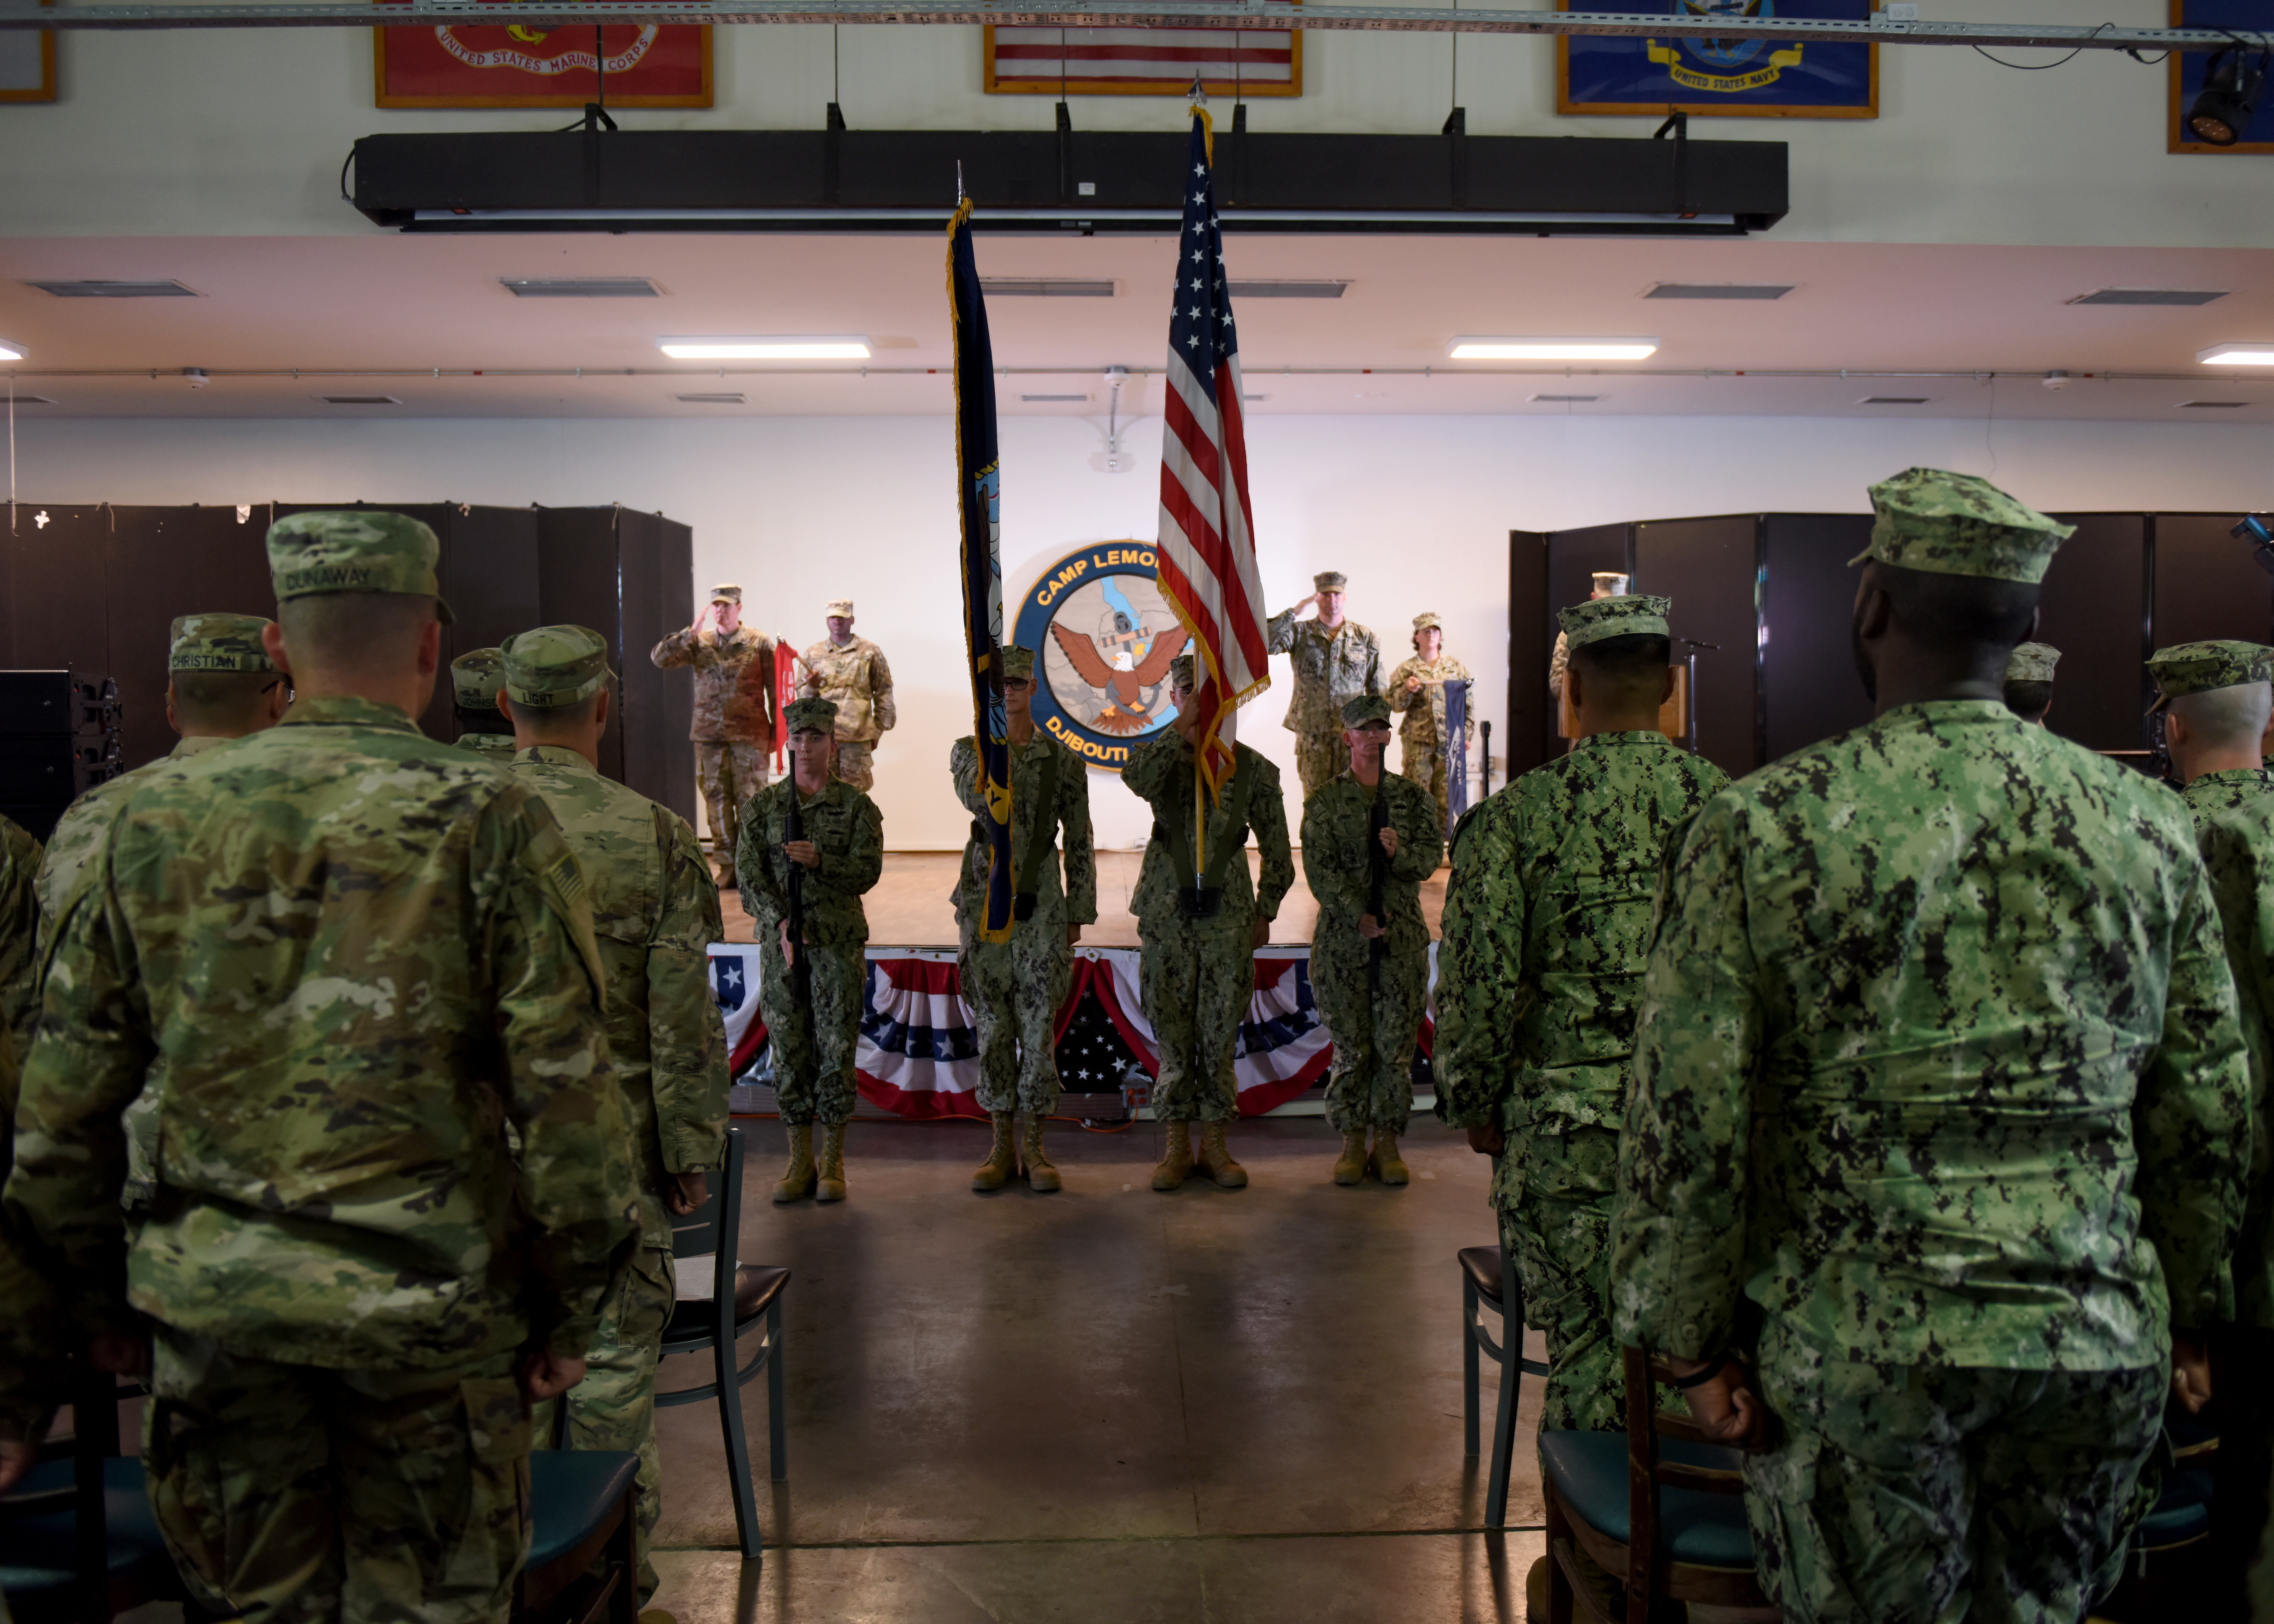 U.S. Navy Seabees from Naval Mobile Construction Battalion (NMCB) 1, assigned to Combined Joint Task Force-Horn of Africa (CJTF-HOA), present the colors during a transfer-of-authority ceremony at Camp Lemonnier, Djibouti, Feb. 11, 2019. The NMCB 1 transferred authority of building and improving facilities on base and in the combined joint operations area and area of interest to the U.S. Army 465th Engineer Company, 926th Engineer Battalion, 926th Engineer Brigade, 412th Theater Engineer Command, based in Birmingham, Alabama, assigned to CJTF-HOA. (U.S. Air Force photo by Staff Sgt. Franklin R. Ramos)